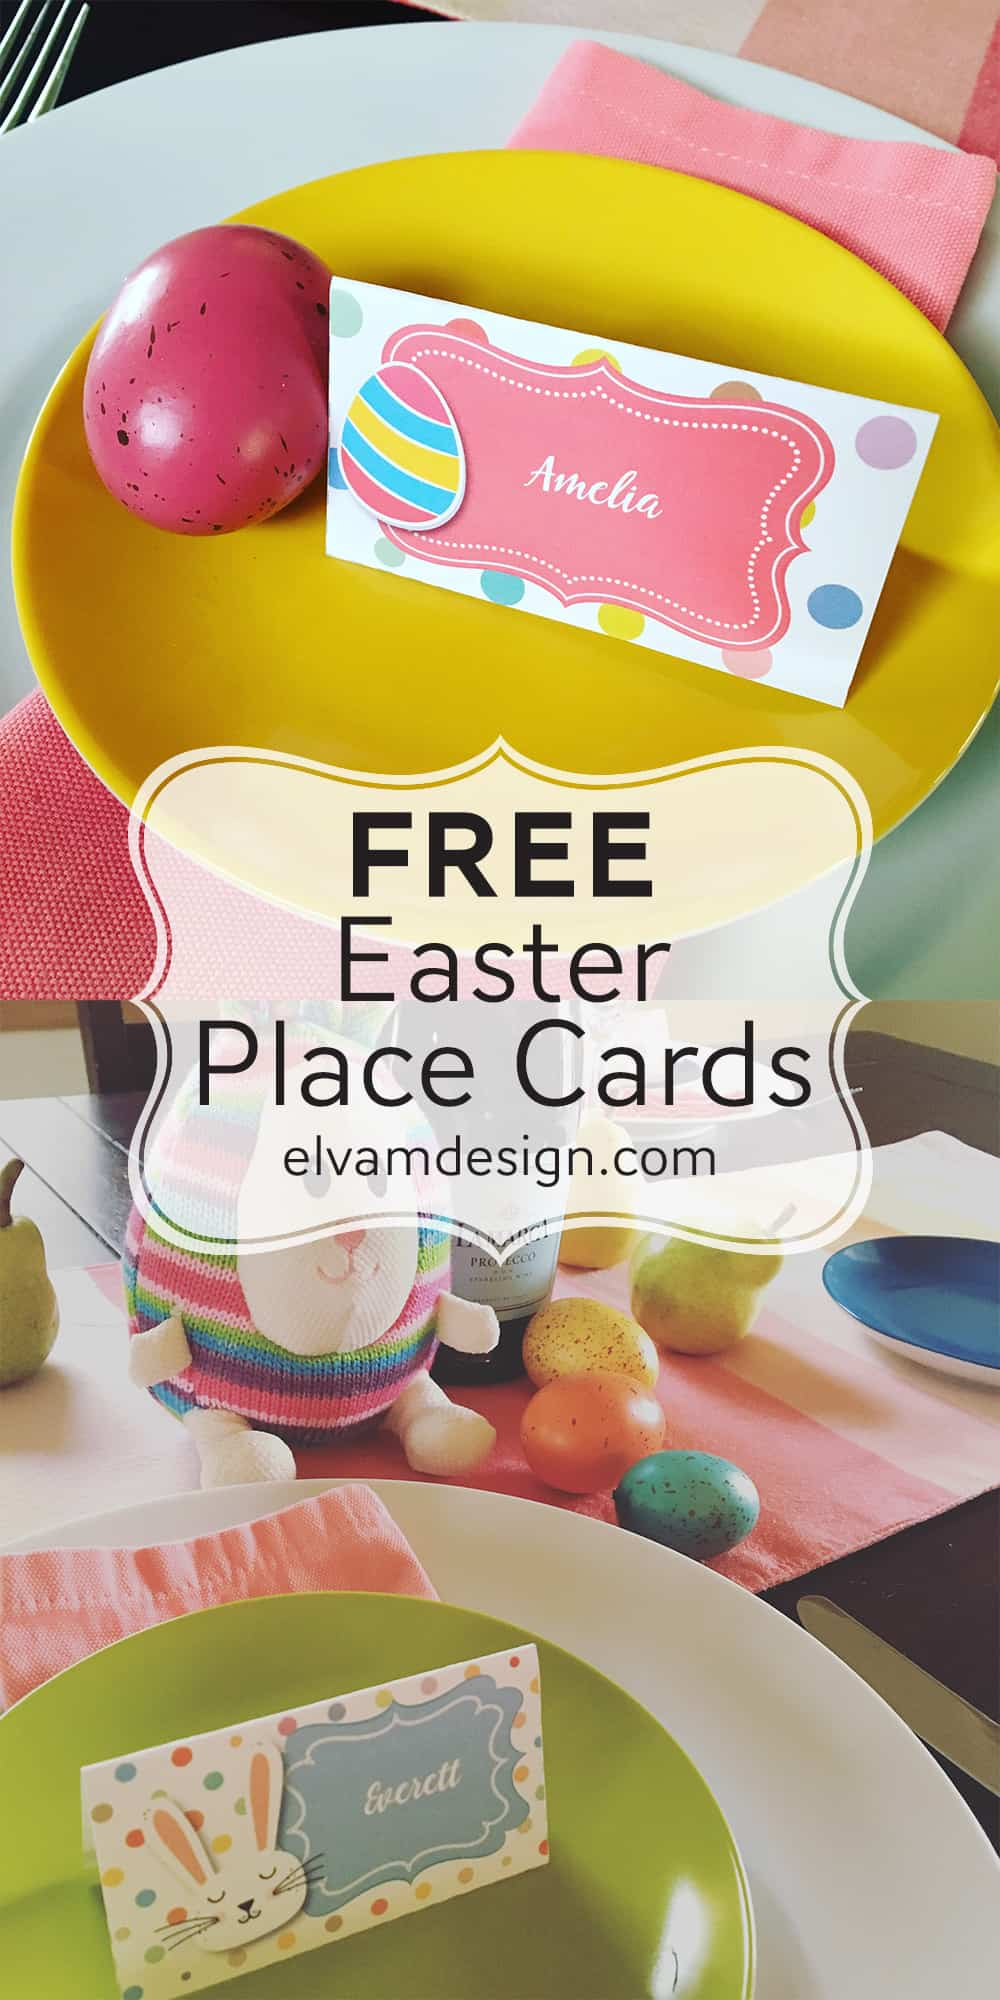 Free Easter Place Cards from Elvamdesign.com